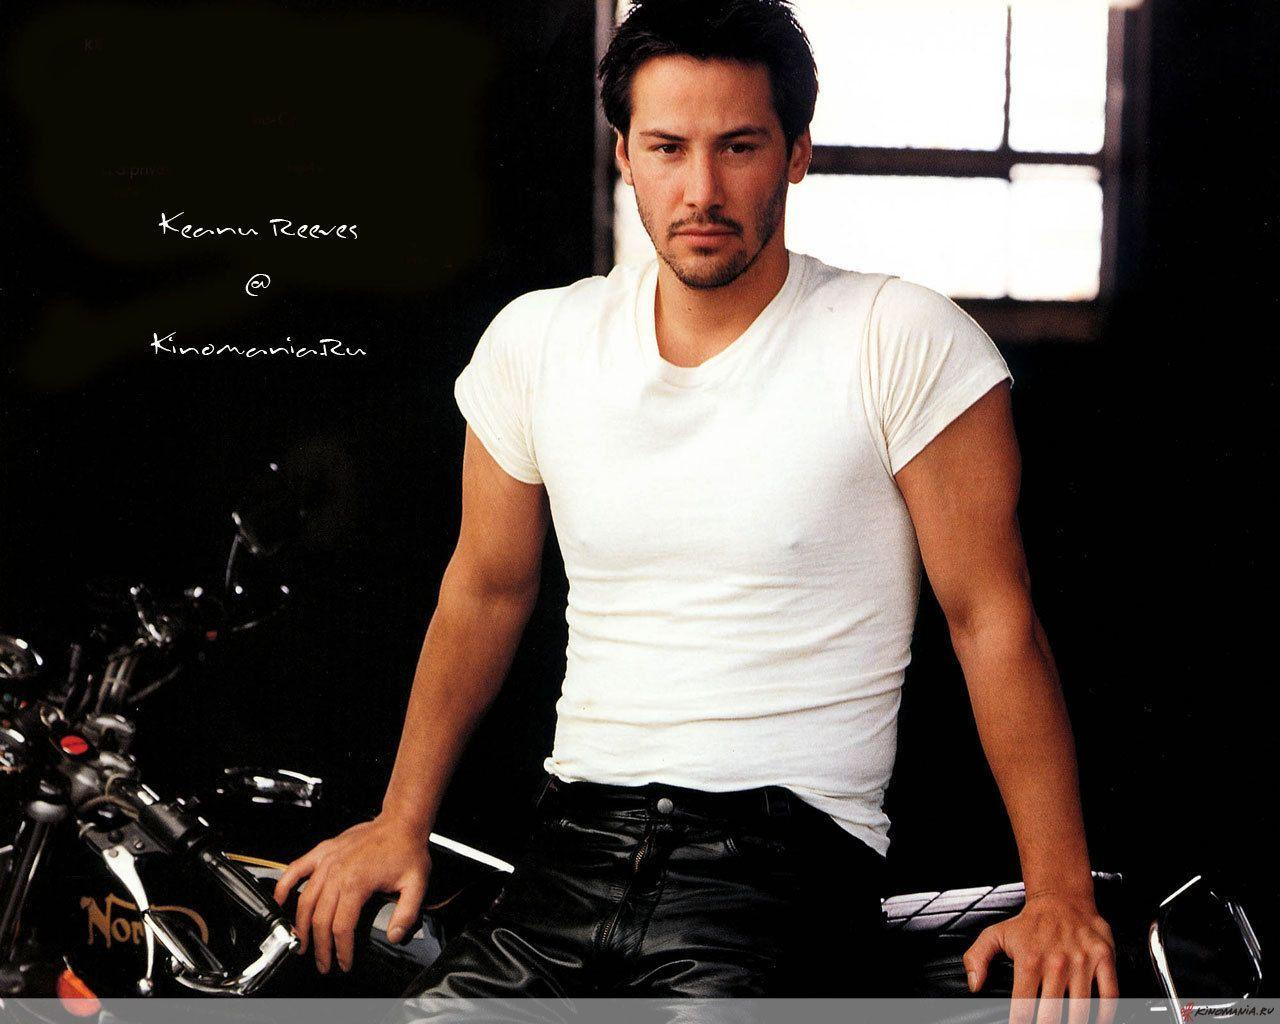 reeves guys Keanu reeves men-i-find-attractive keanu reeves até a sua voz é linda, sex i'm sorry my existence is not very noble or sublime keanu reeves.